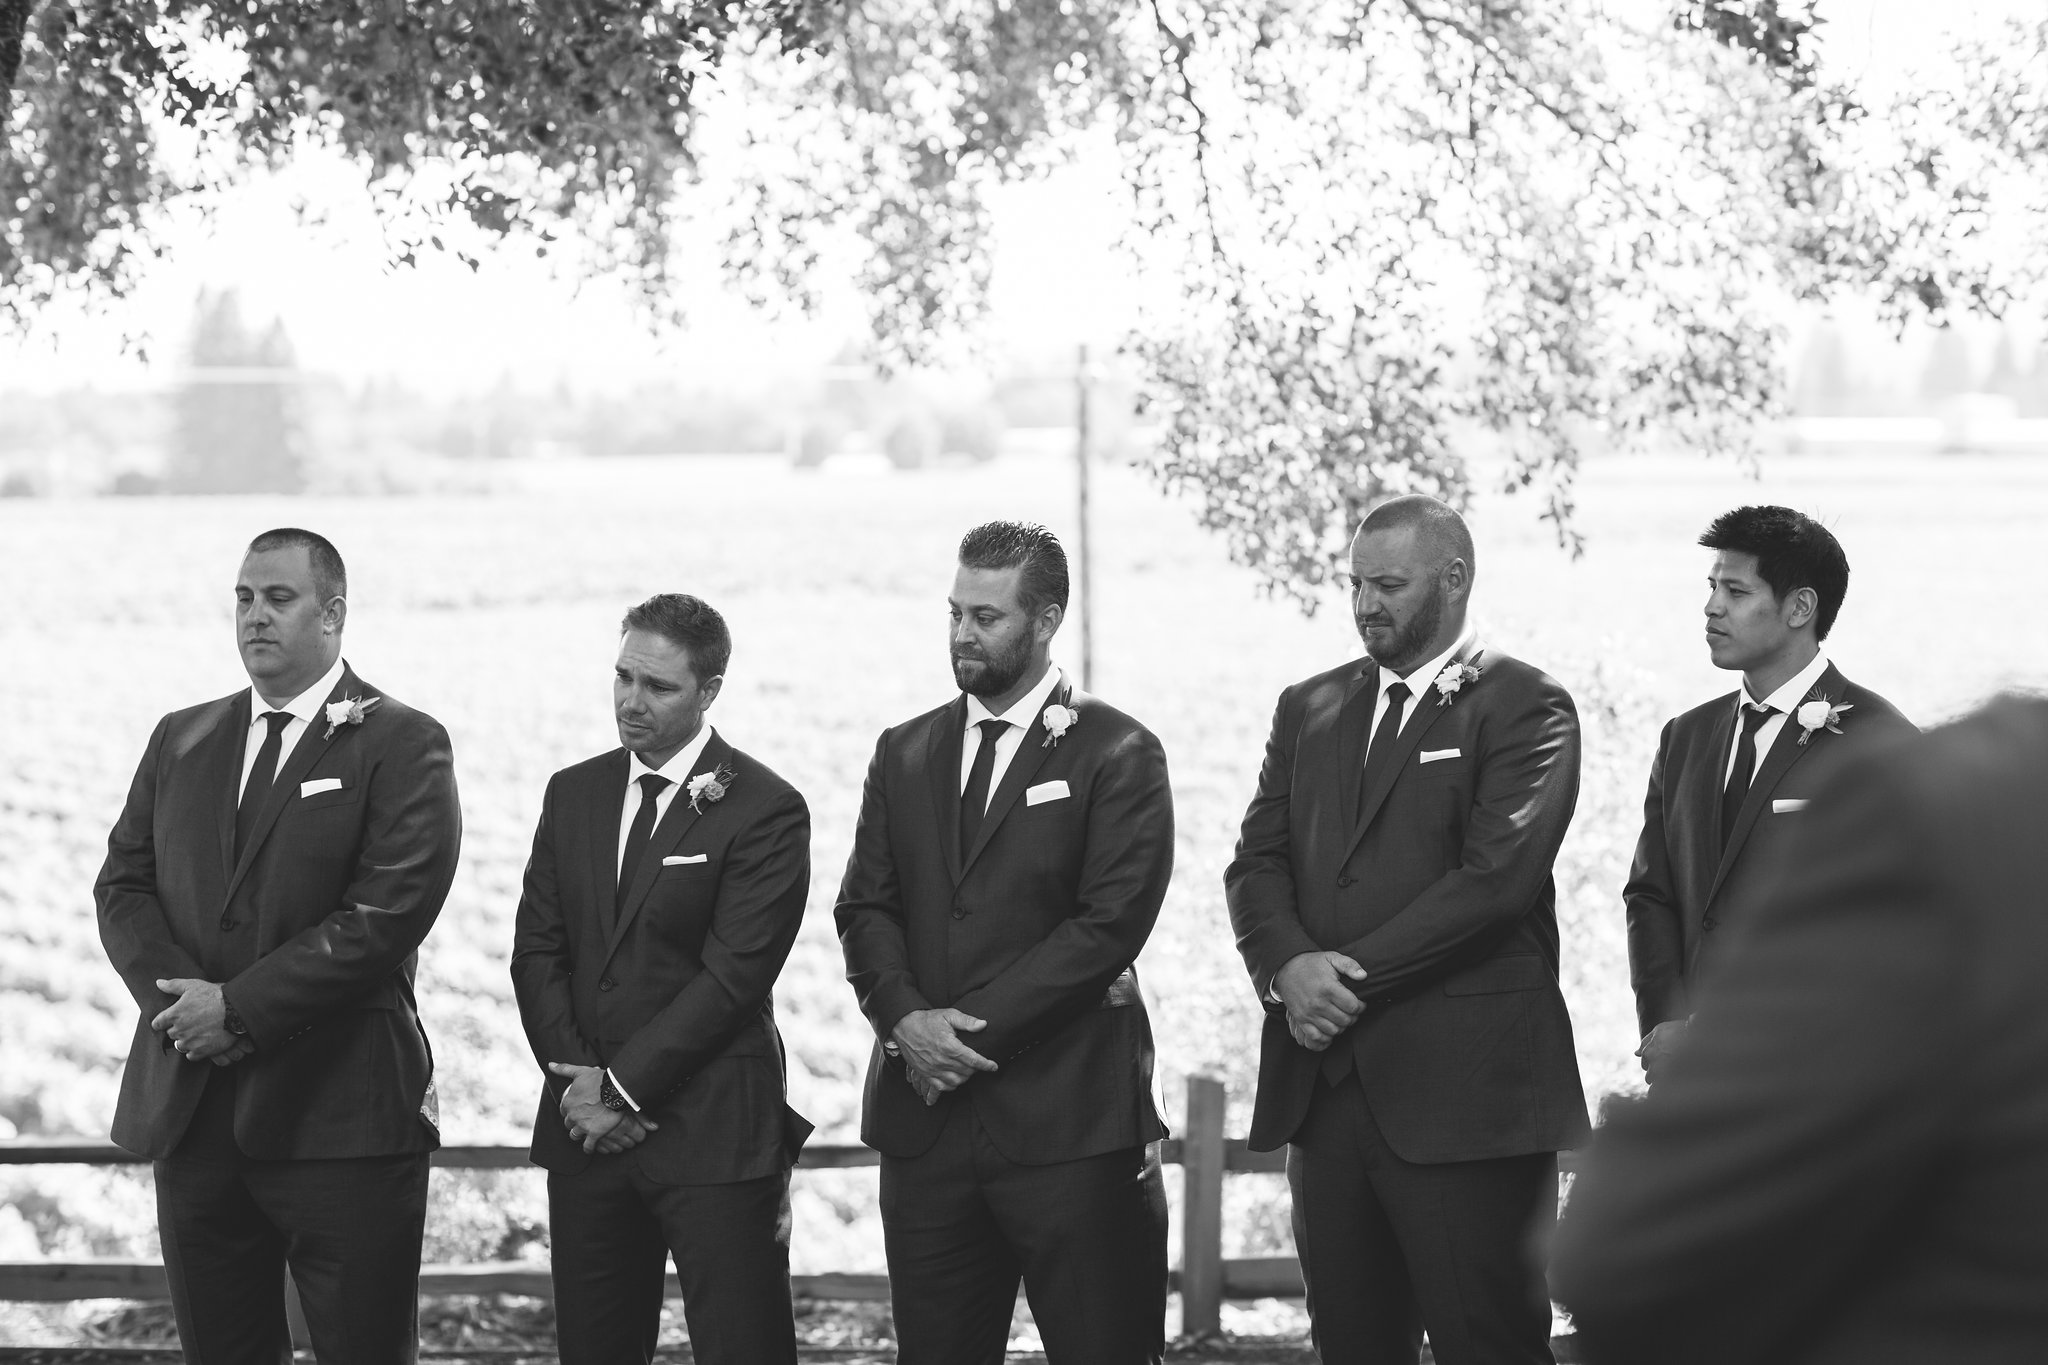 rus-farm-wedding-healdsburg-ceremony-groomsmen-heald-wedding-consulting-hwc.jpg